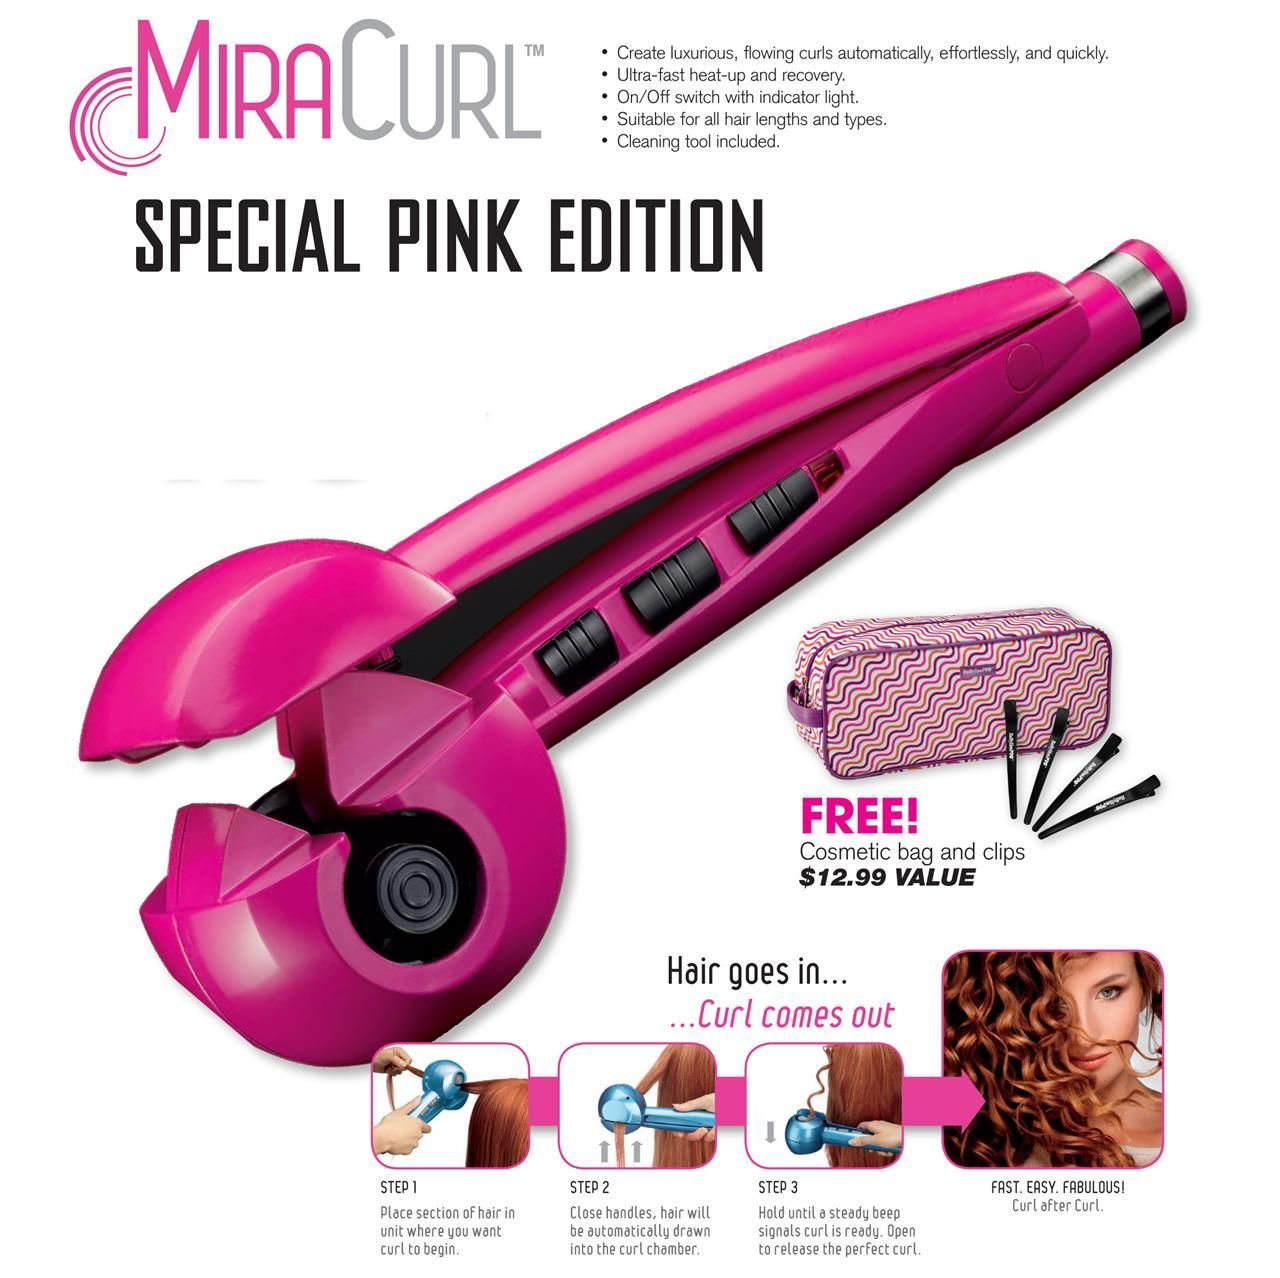 Babyliss miracurl pink limited holiday edition perfect curl free bag